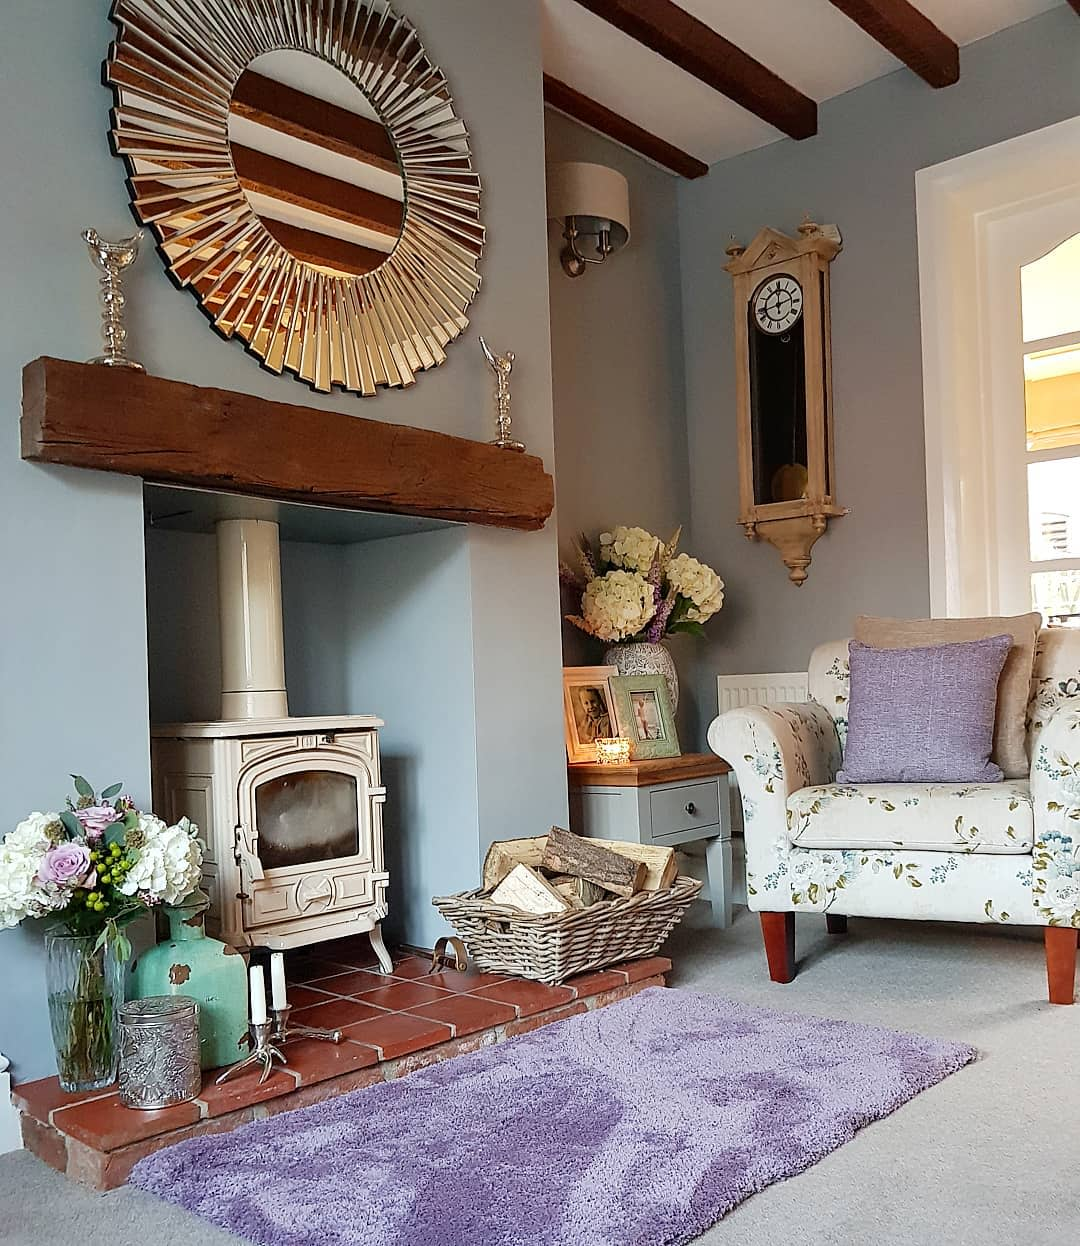 Decor Country Living Room Ideas -kirstyscottage_life